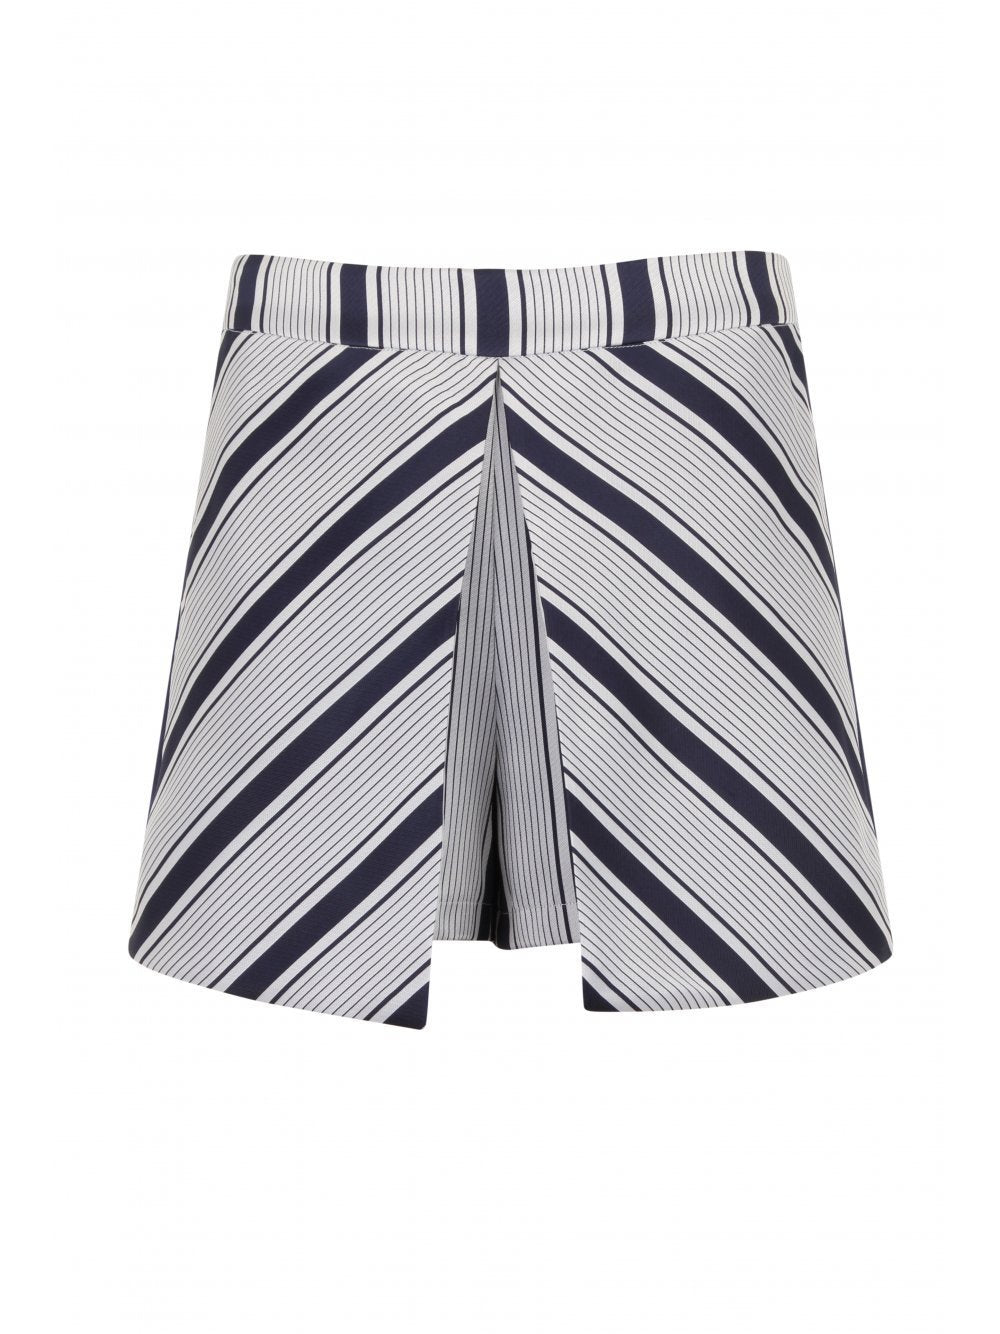 Navy & White Stripe Print Shorts